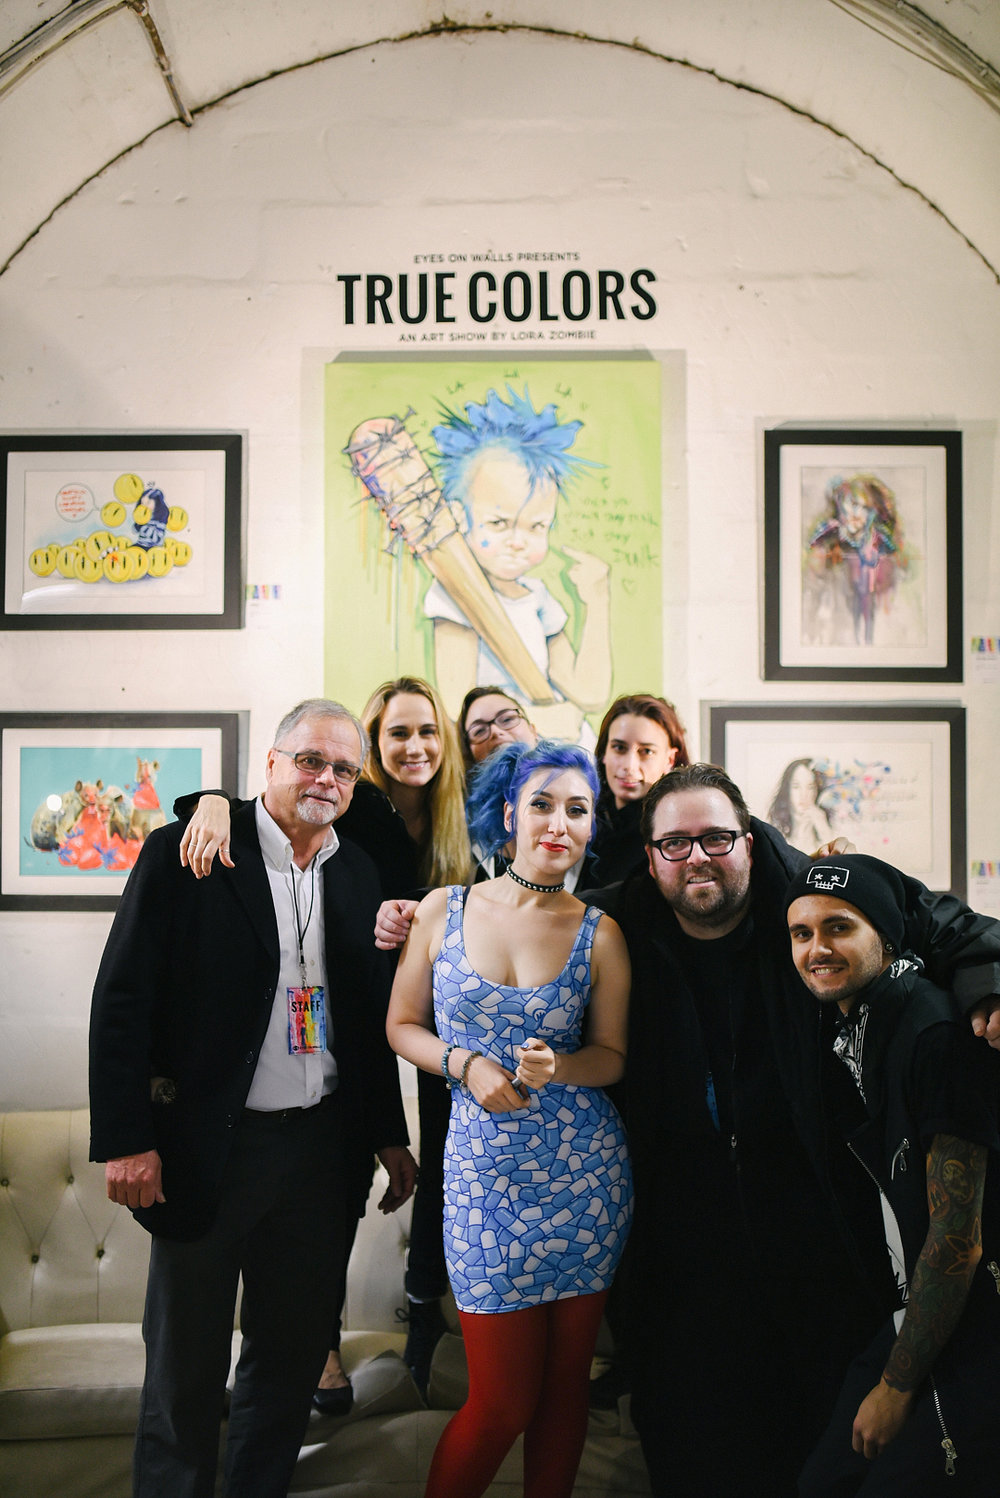 truecolors (249 of 251).jpg